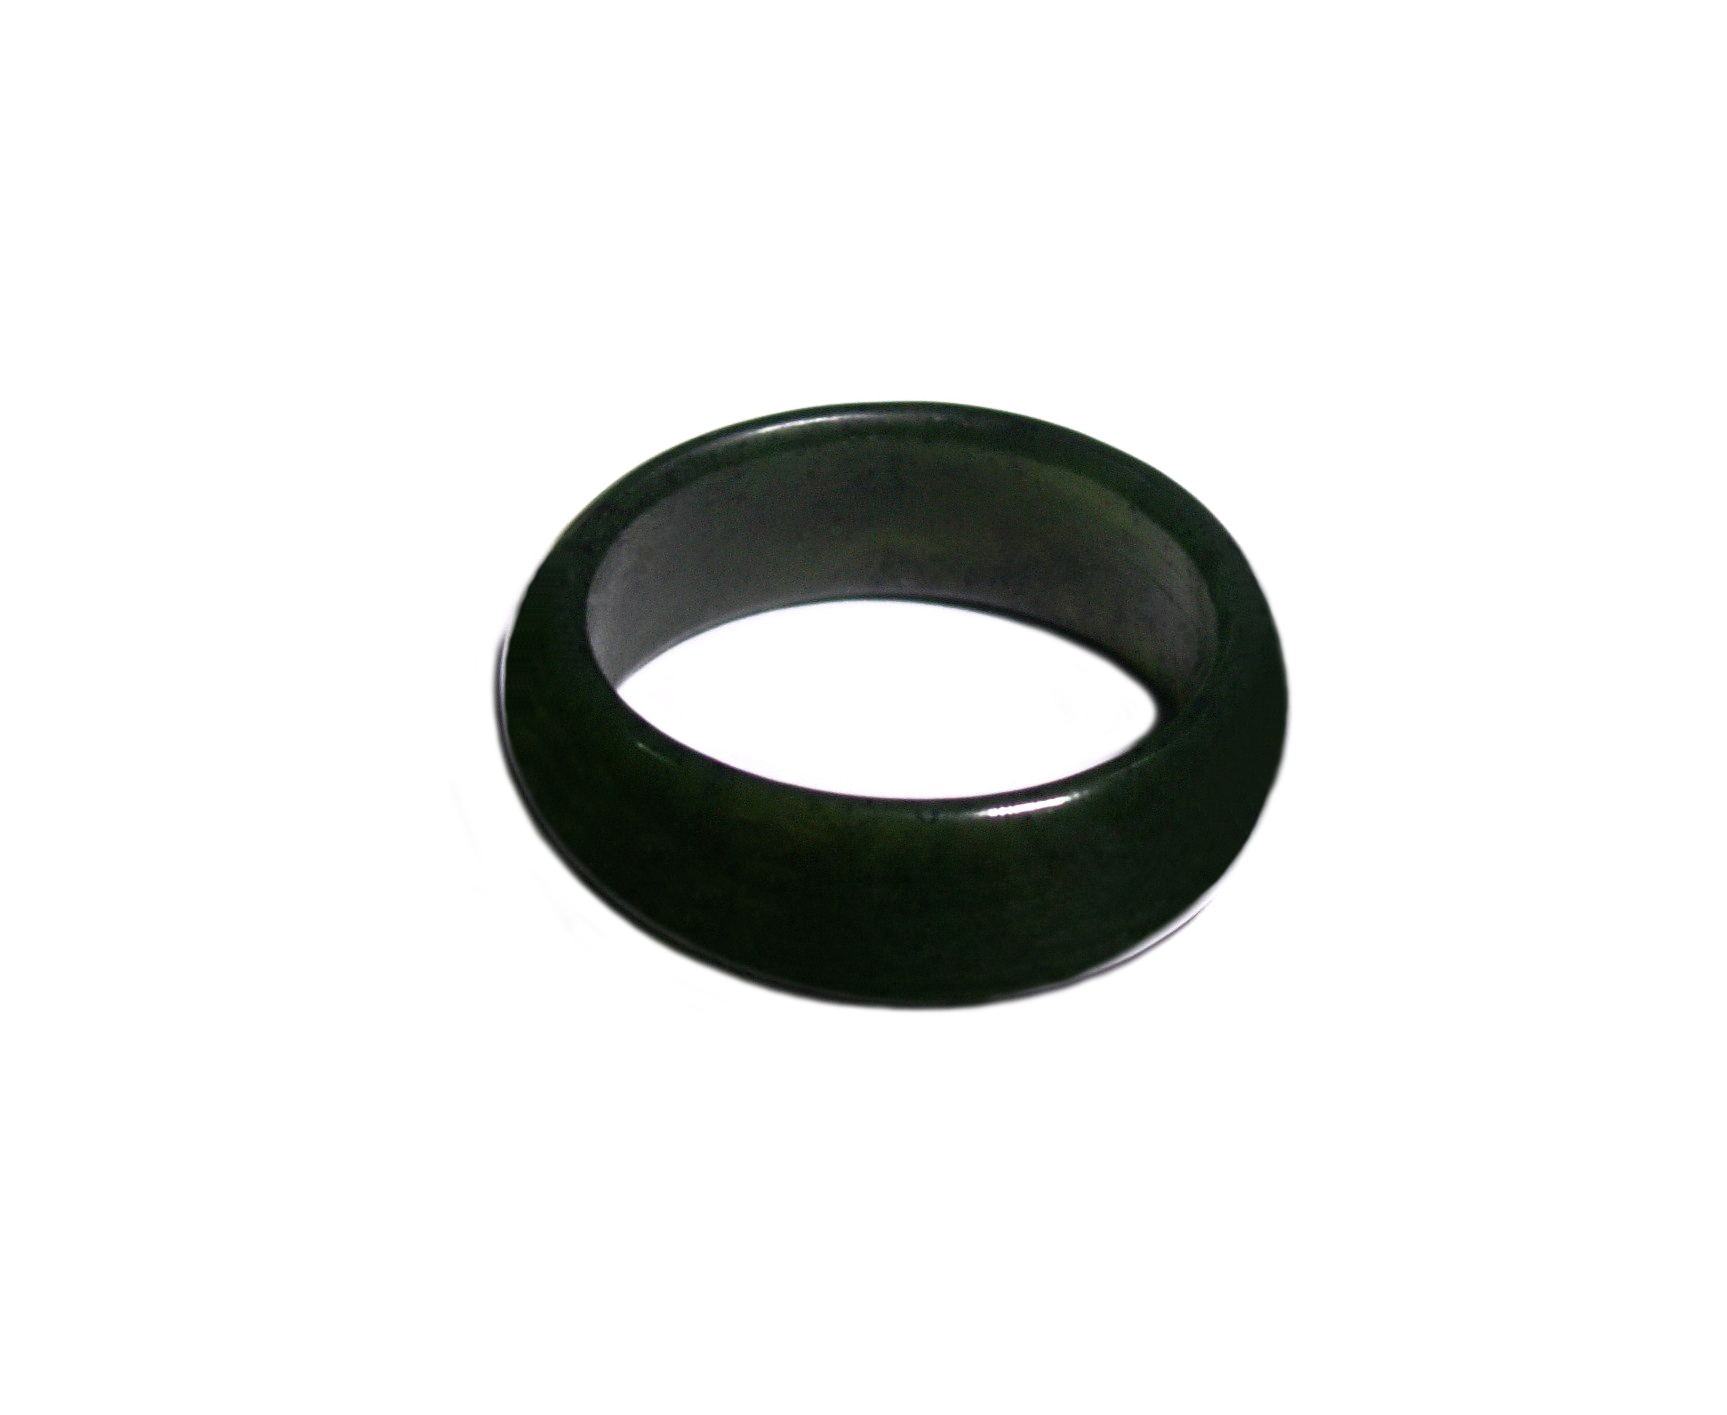 JADE 8MM WIDE BAND RING – SIZE US12(21.49mm)